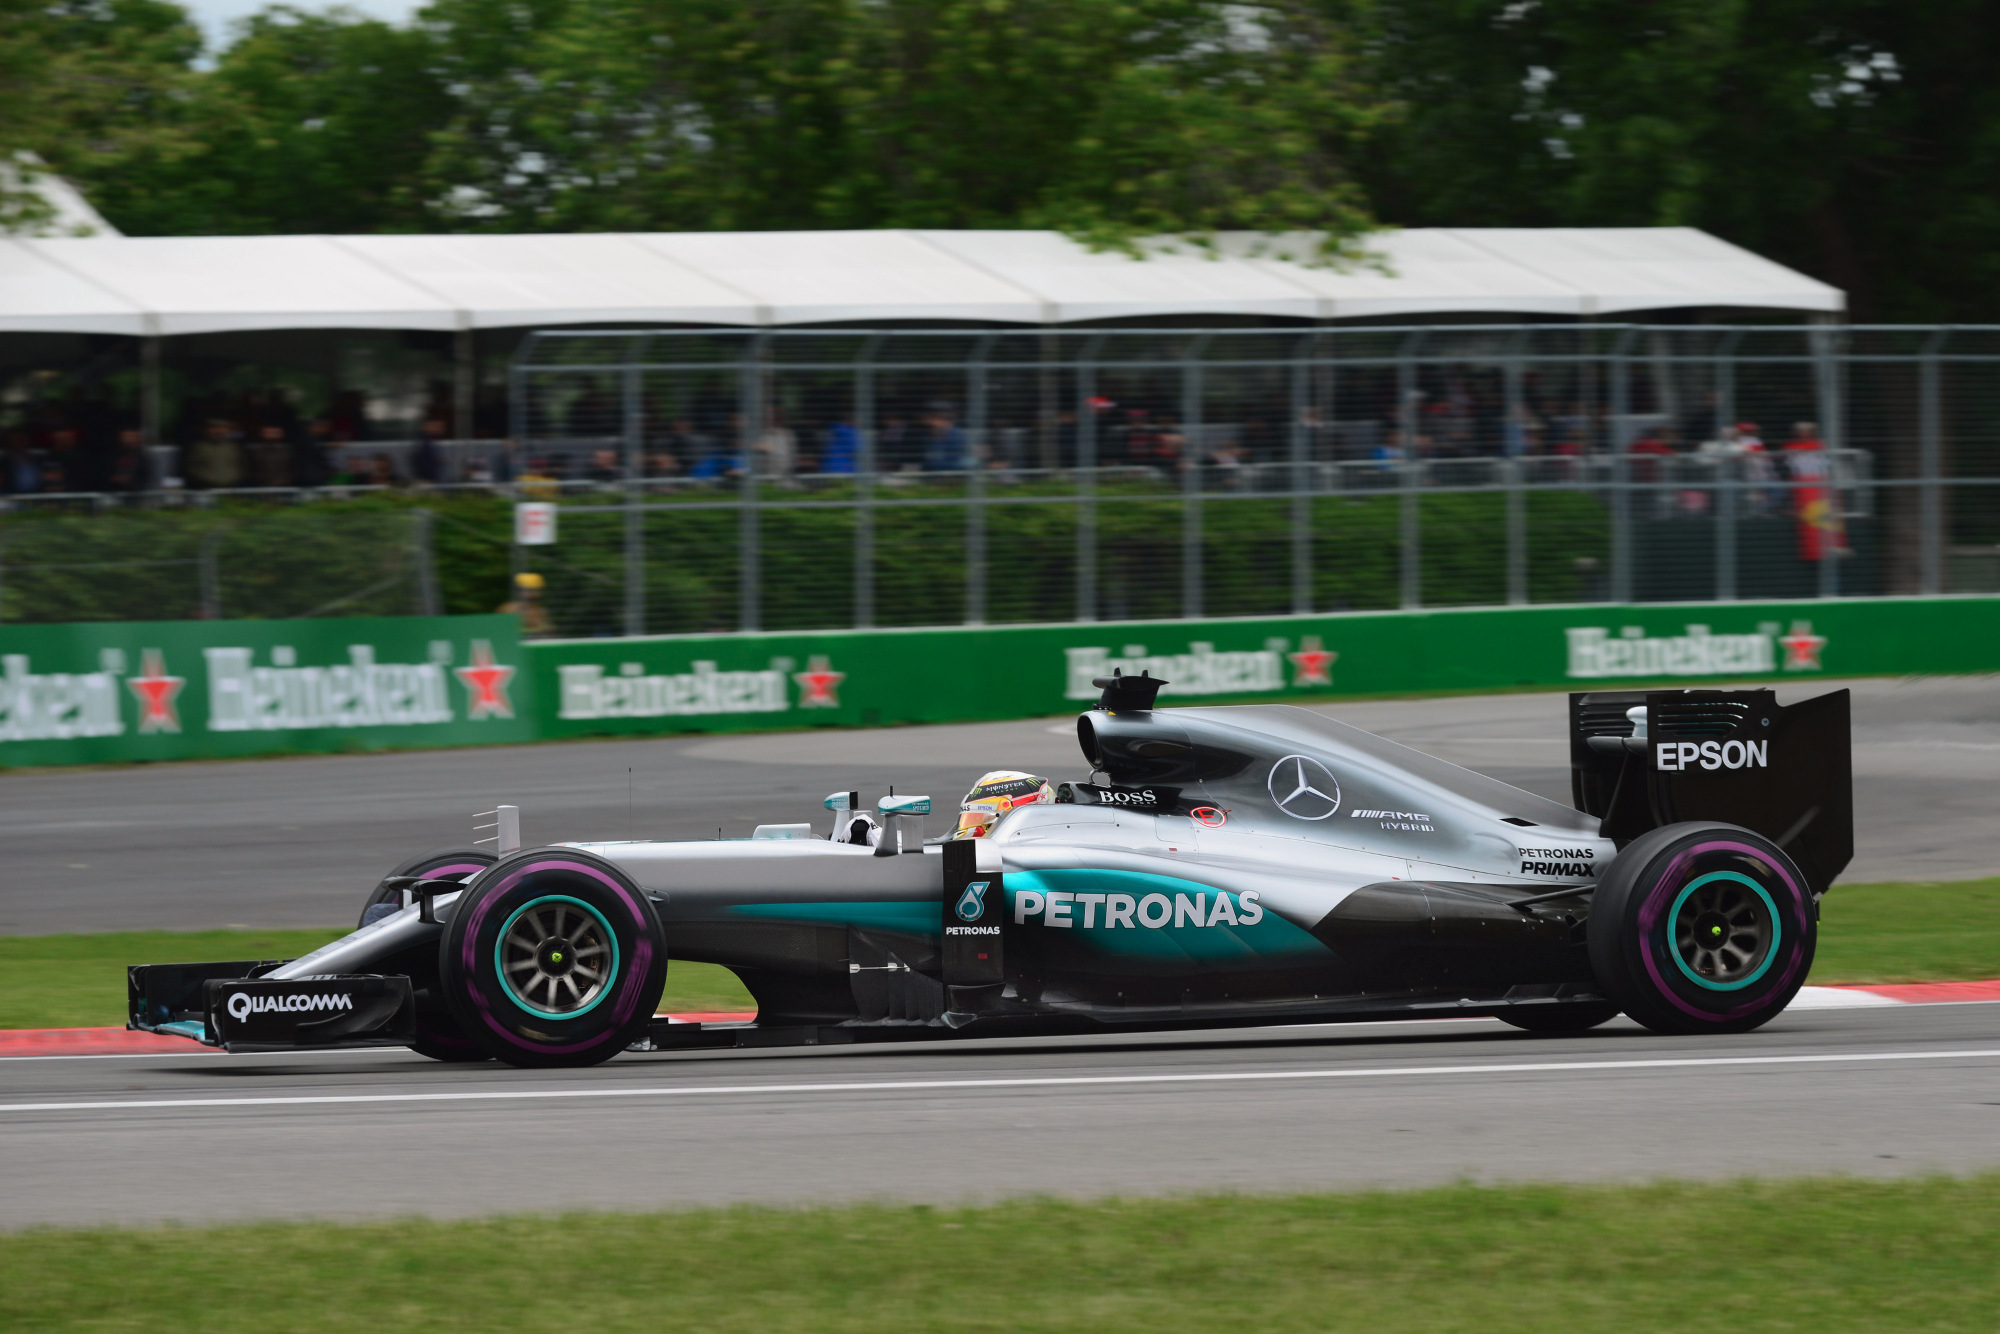 Lewis Hamilton in the lead of the Canadian GP